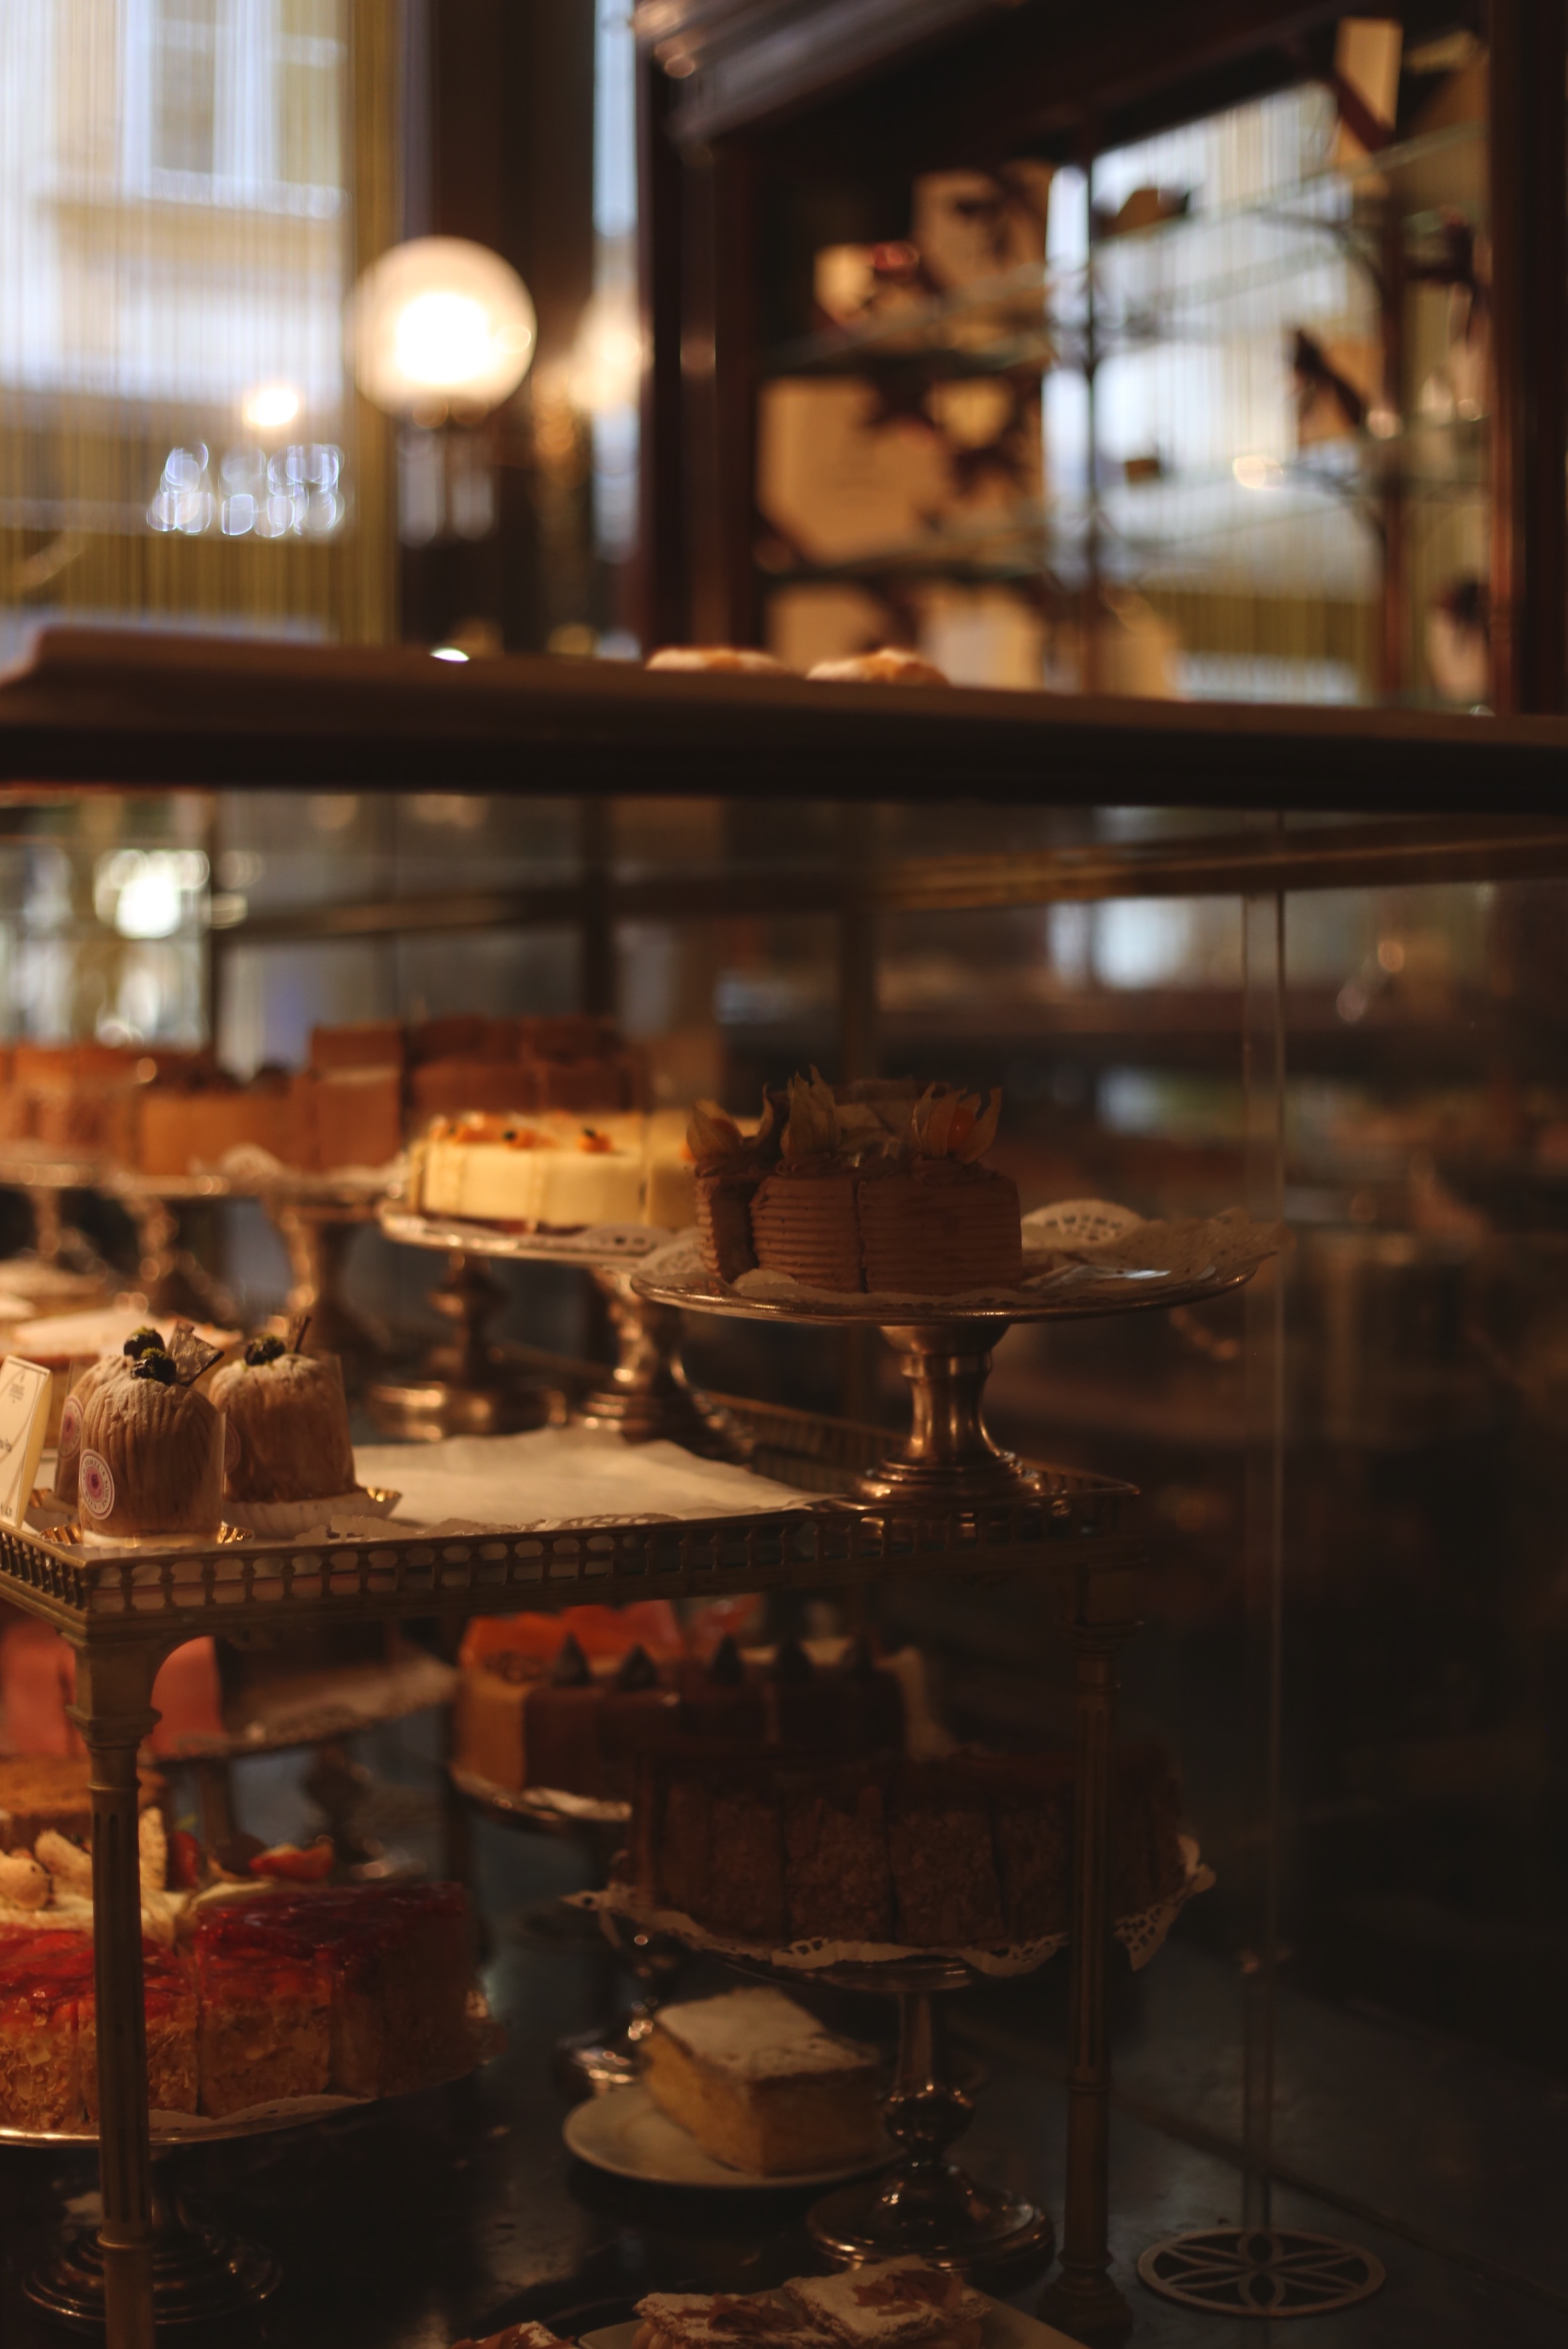 cakes on stands